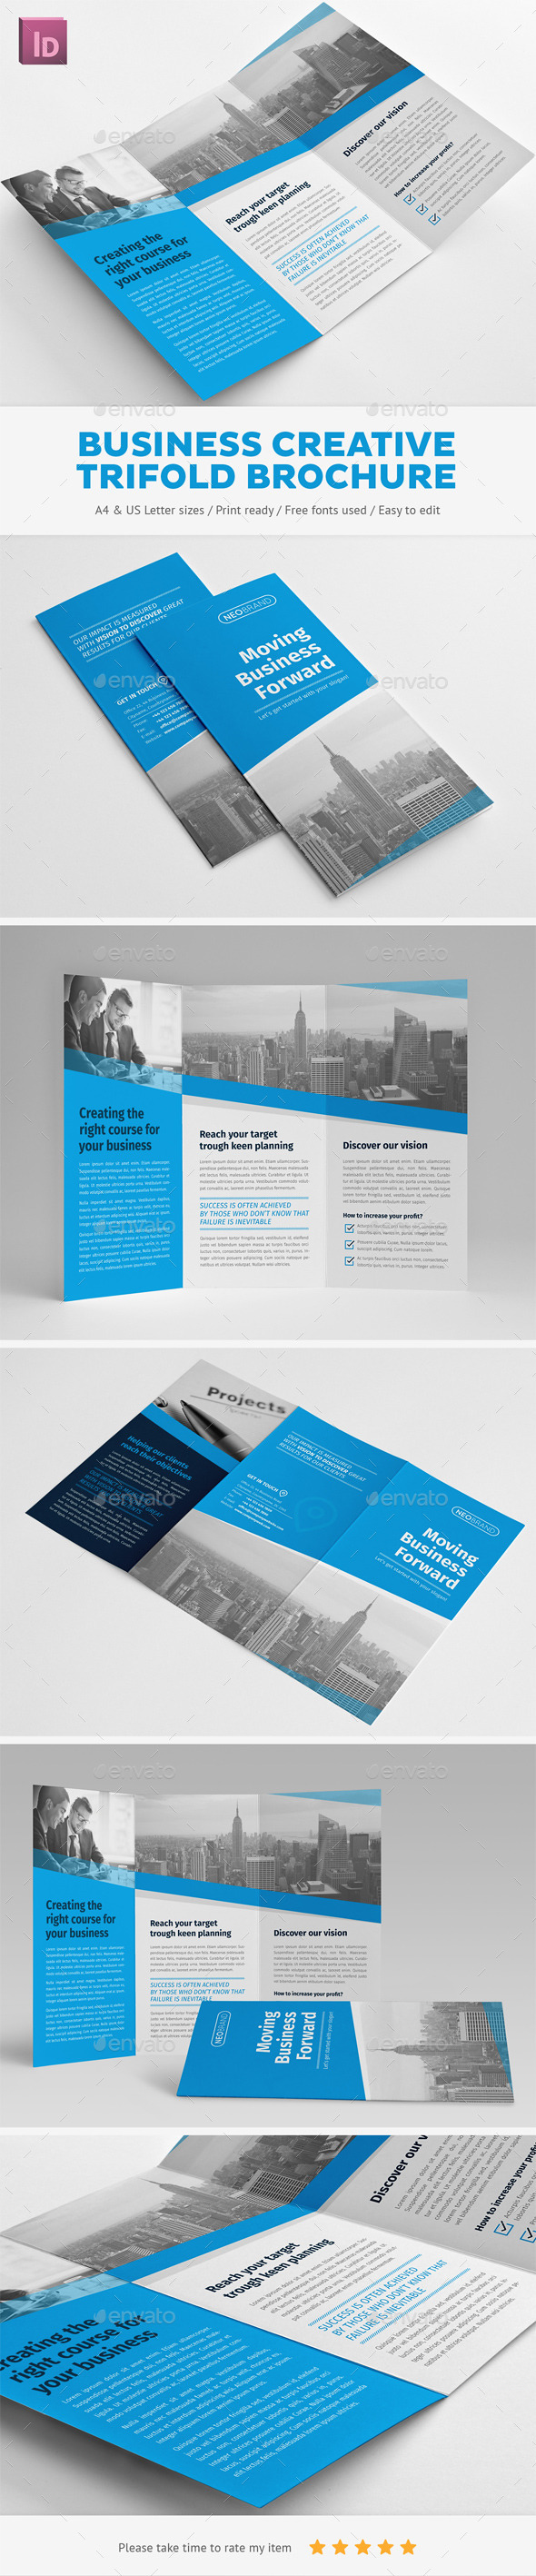 Business Creative Trifold Brochure - Corporate Brochures